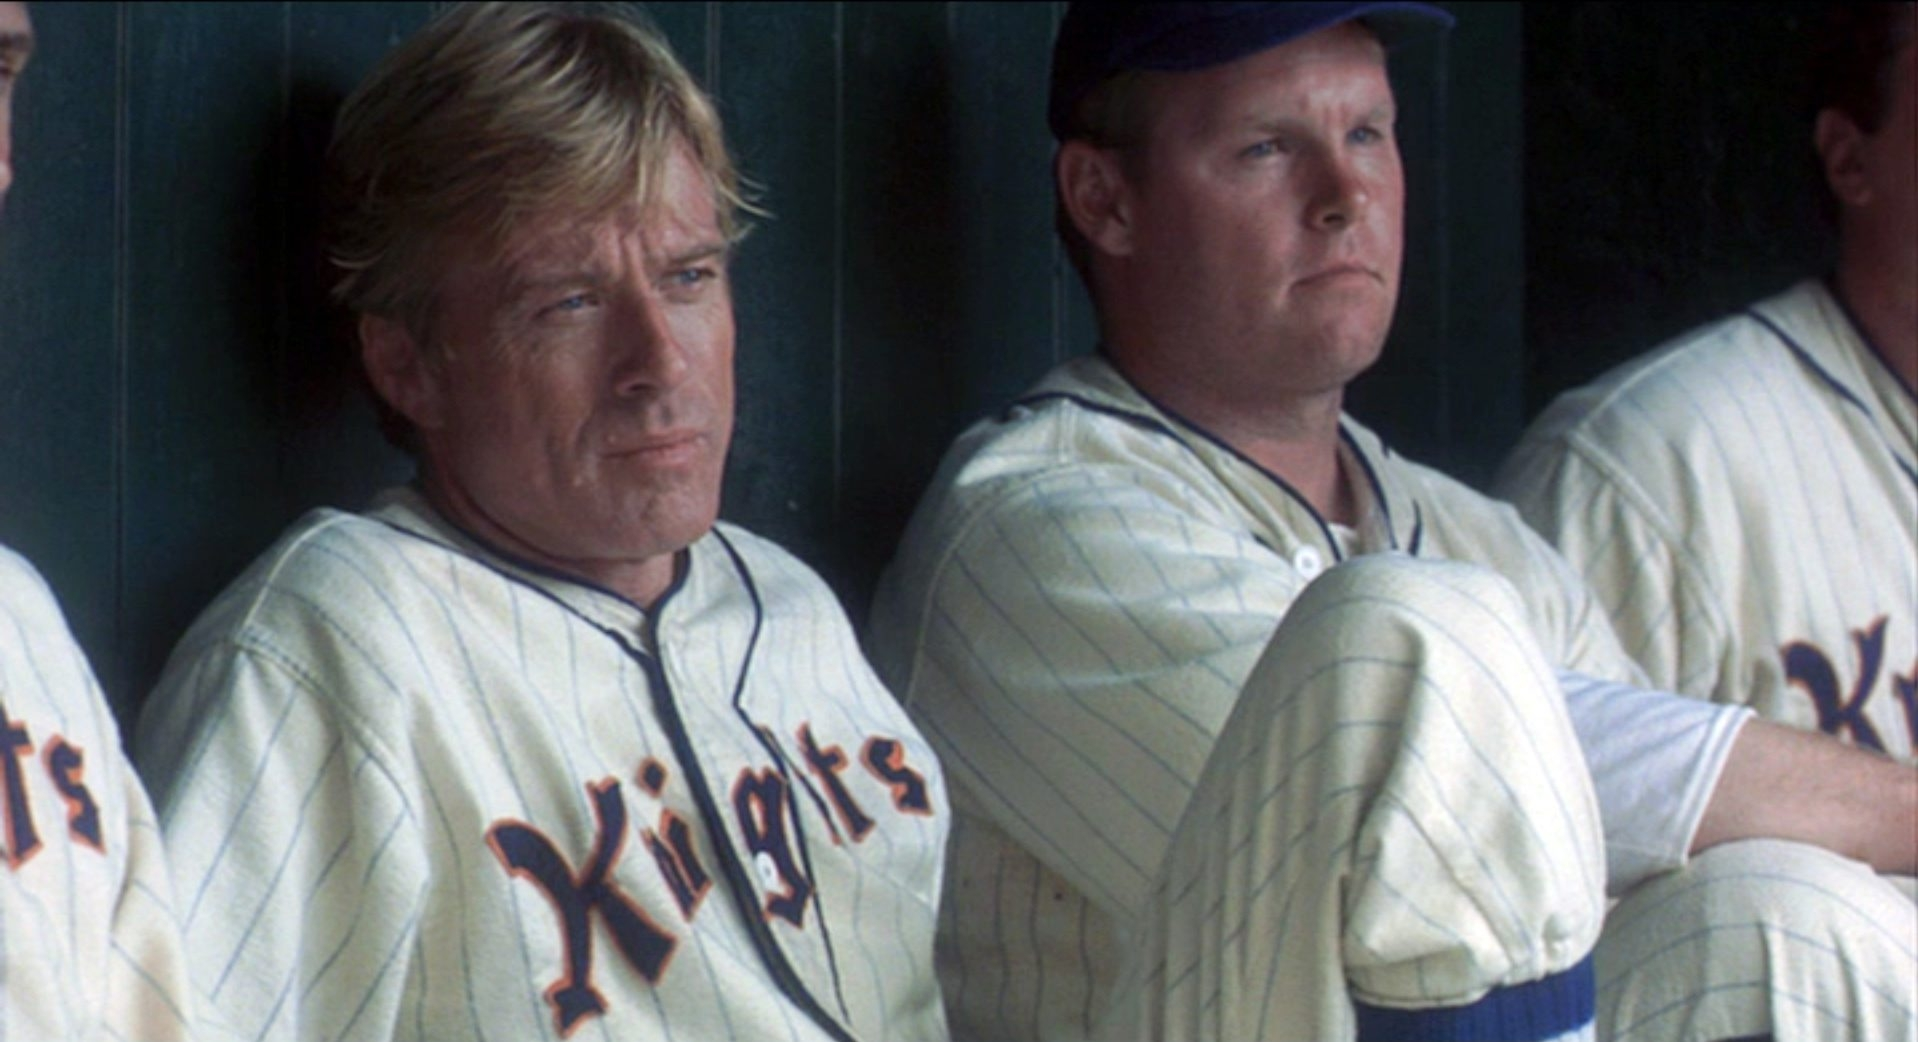 Robert Redford and Duke McGuire (left) in The Natural.